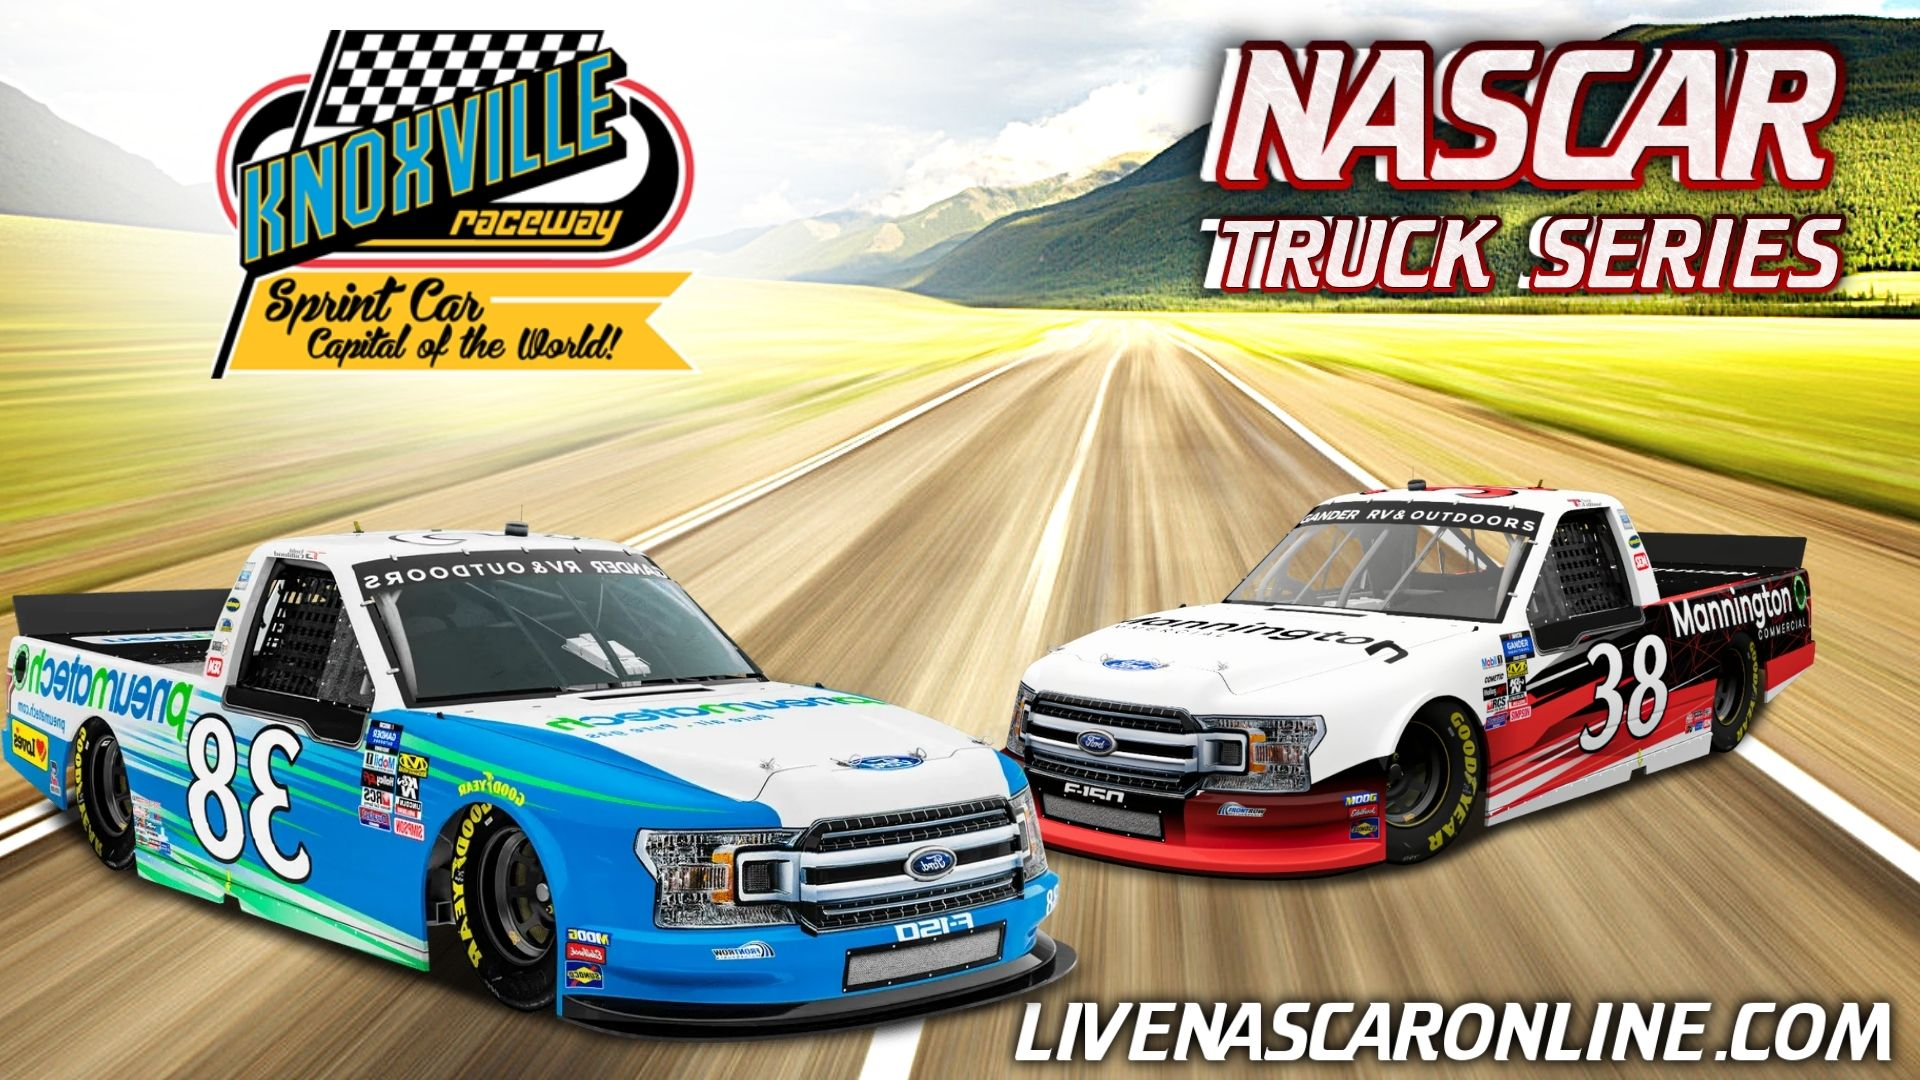 NASCAR Truck Race at Knoxville Live Stream 2021